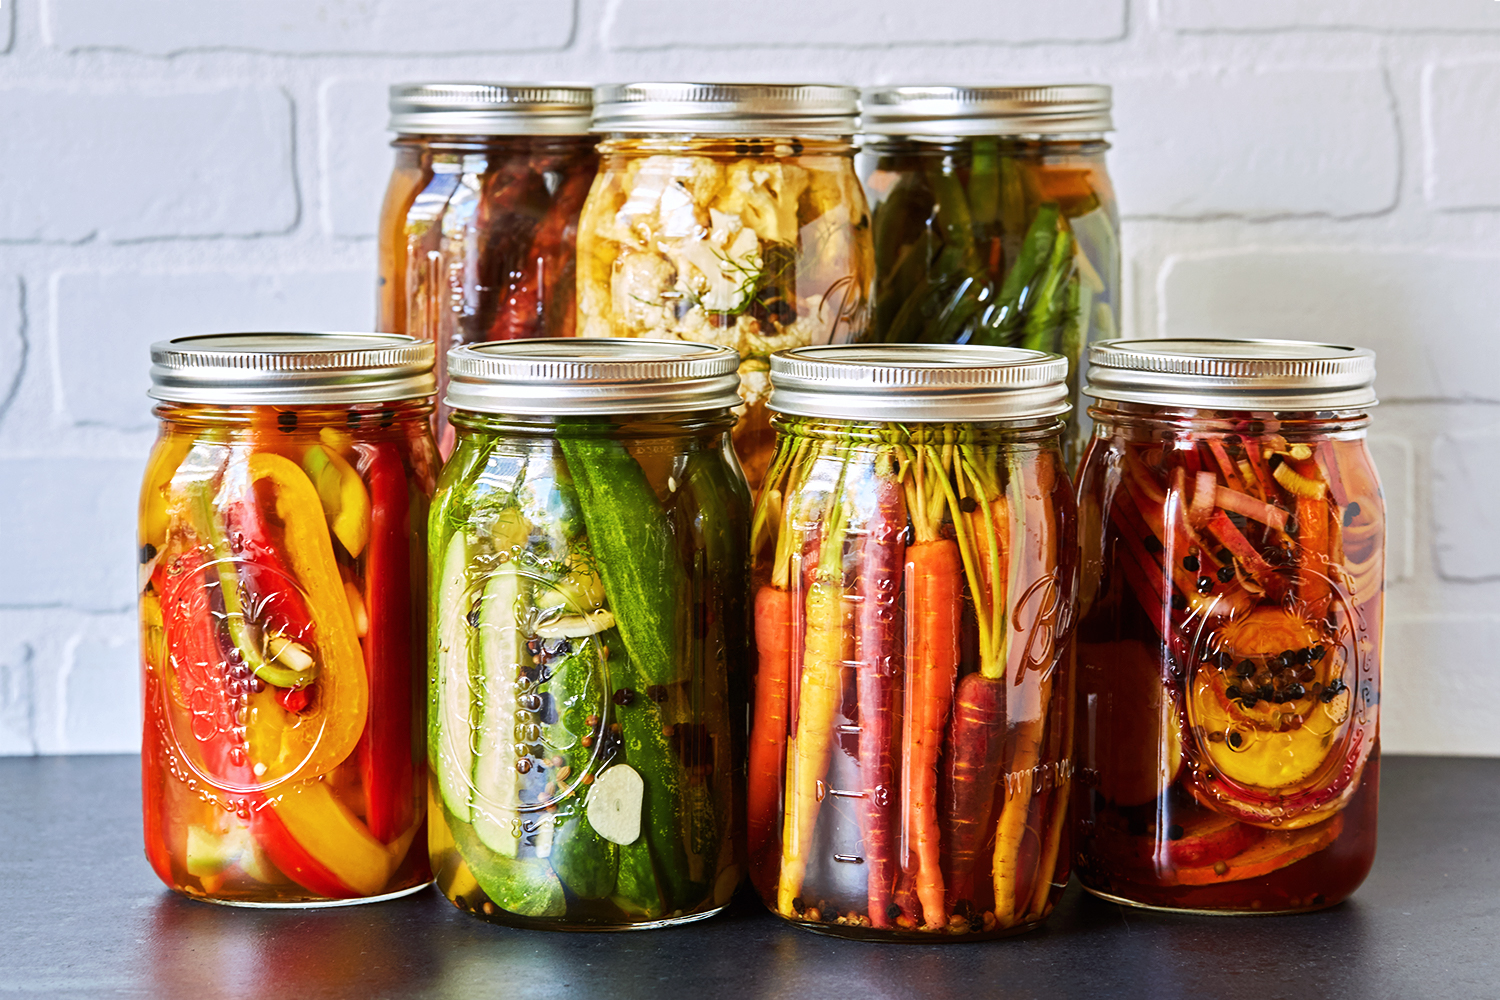 Is Pickled Food Healthy